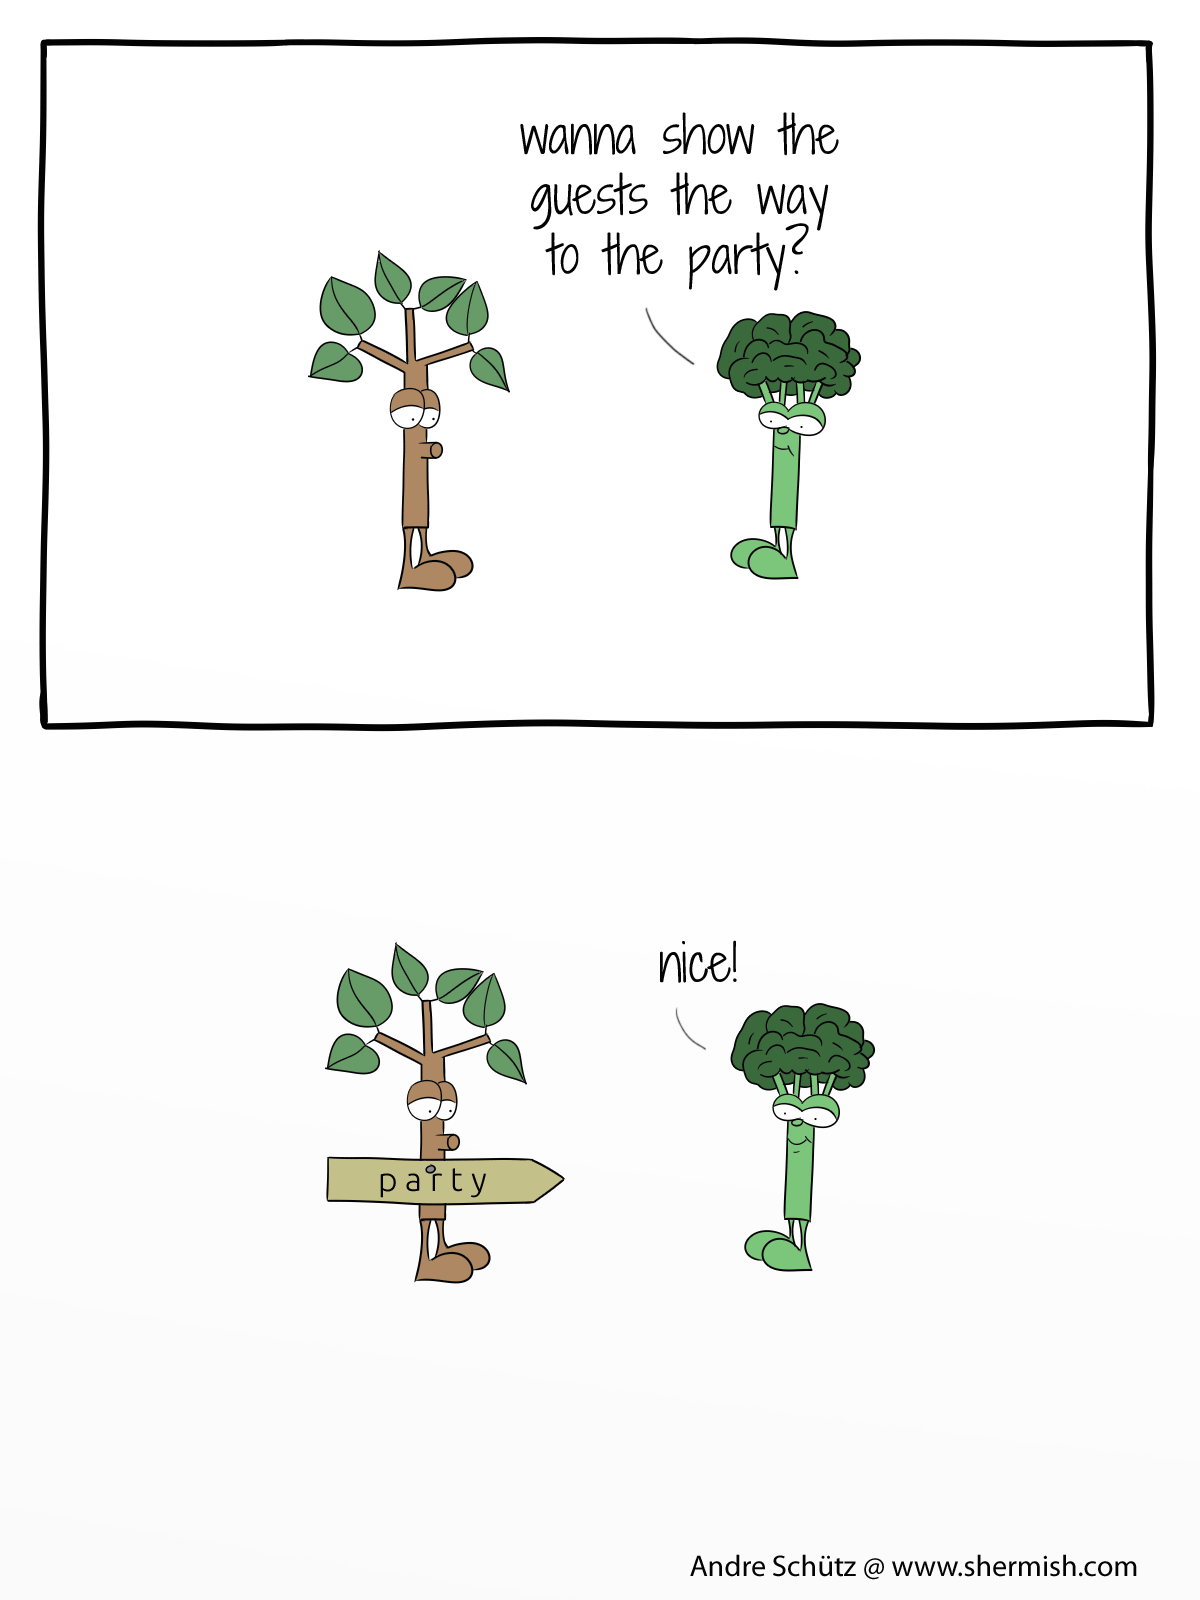 Nature: One is always the loser at the party